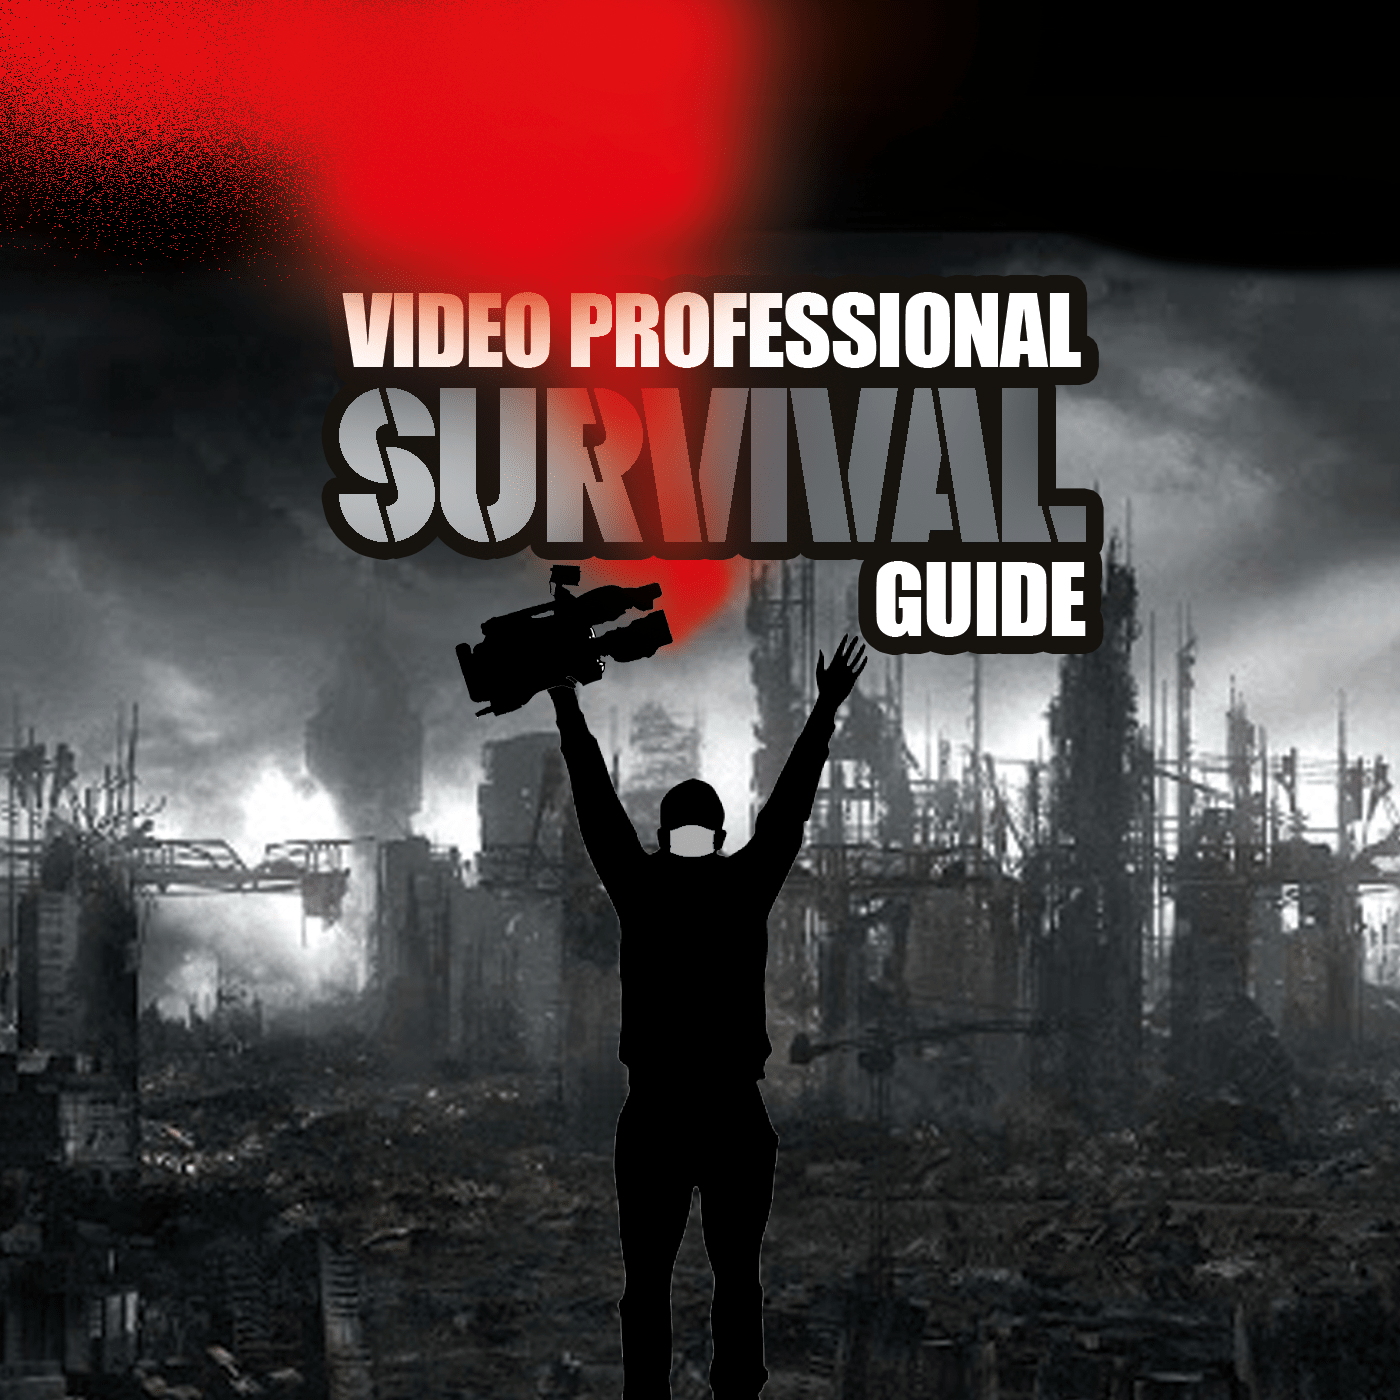 Survival options for video professionals